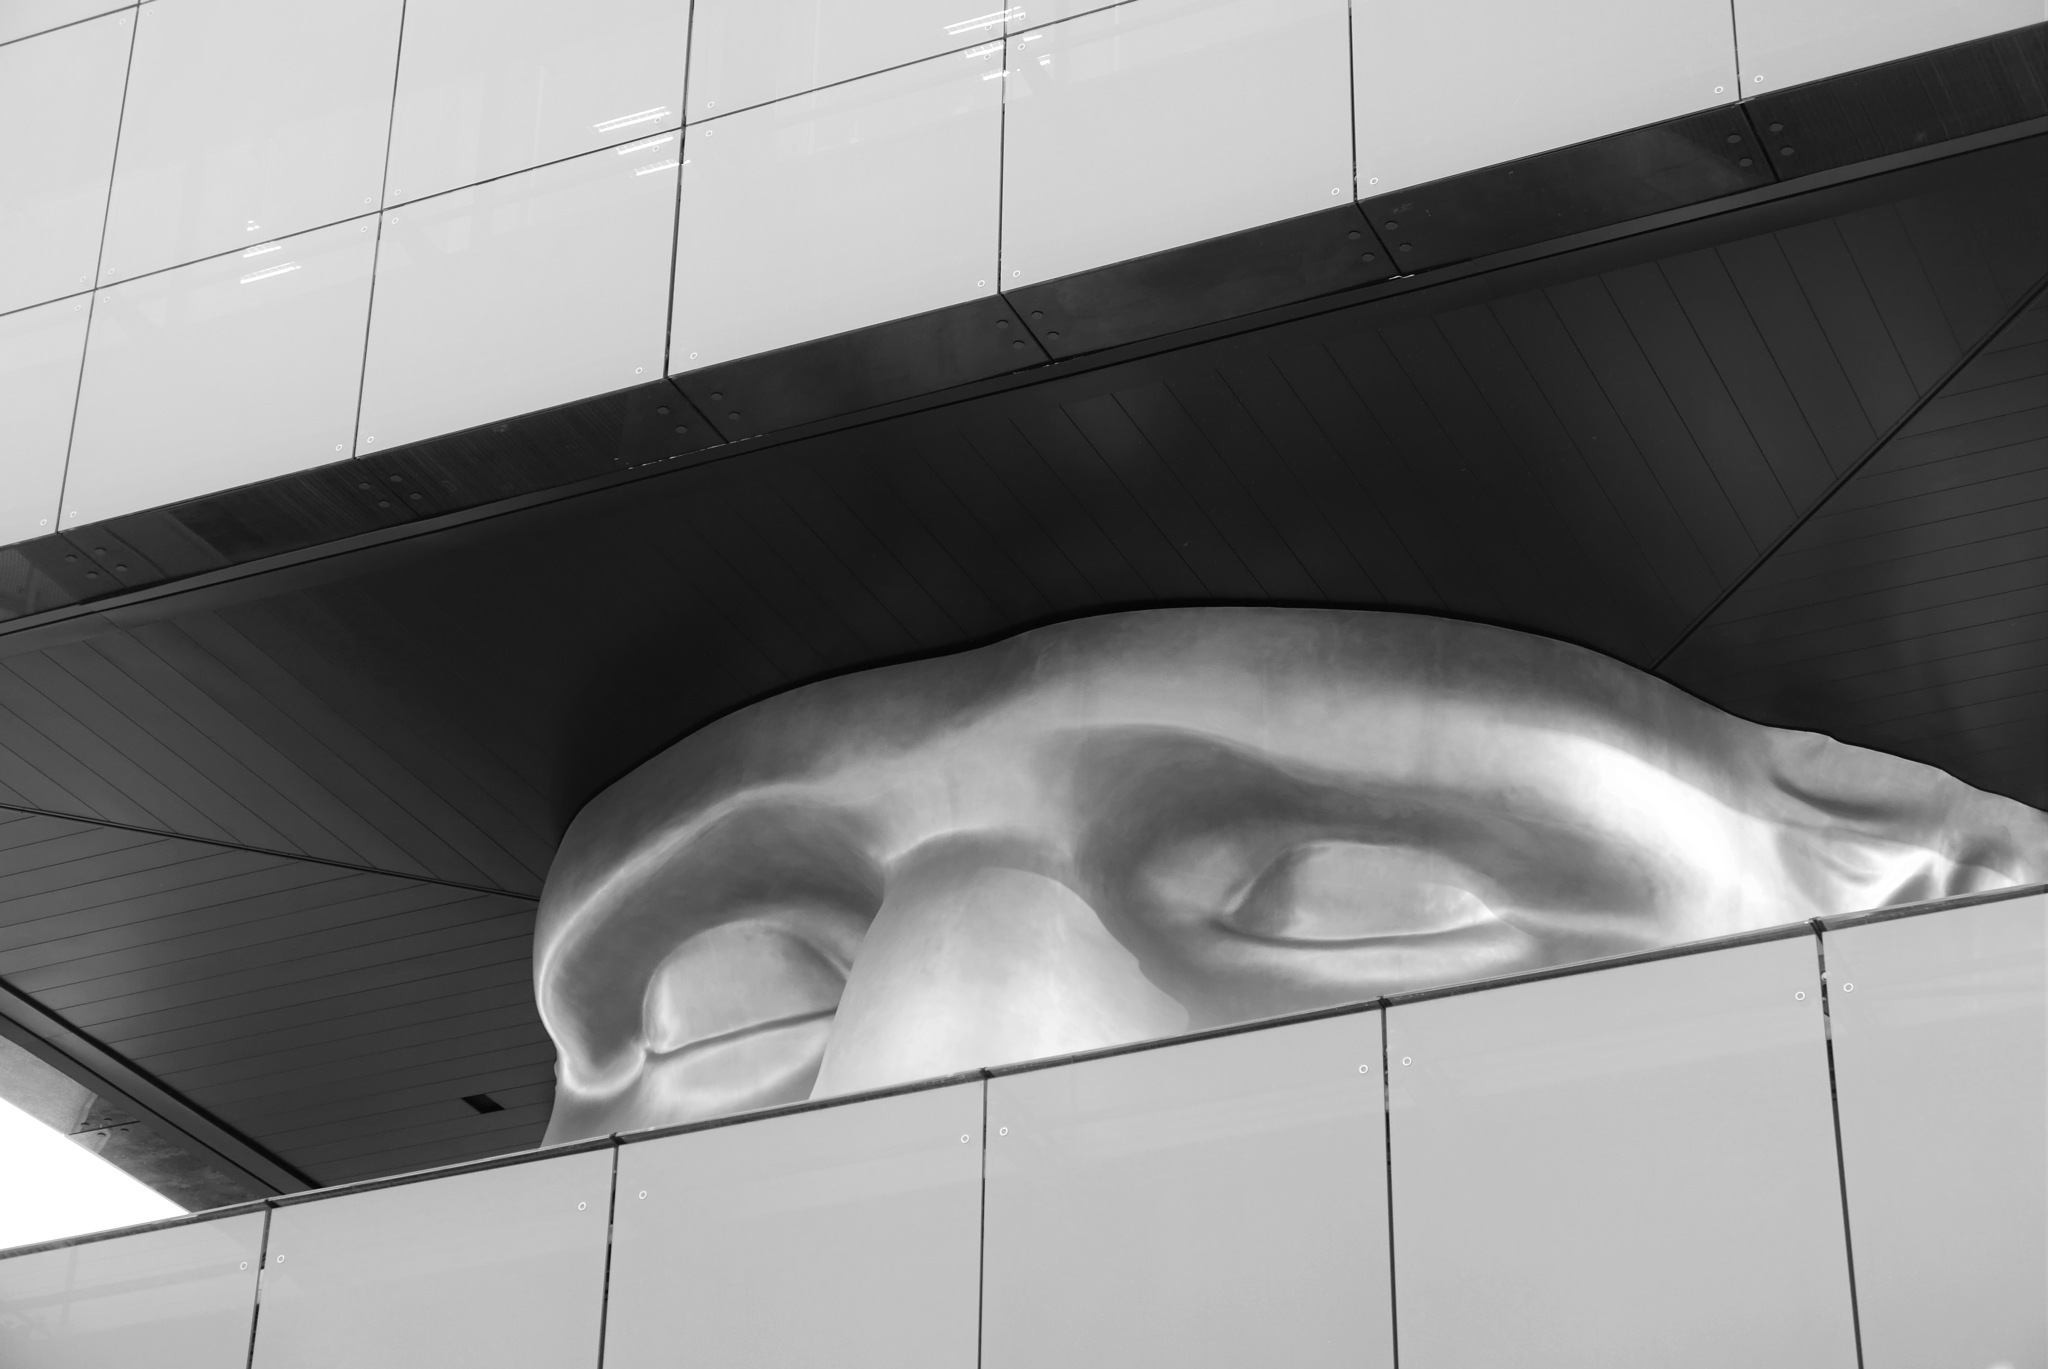 """""""The Watchman""""  (""""Le Guetteur"""" ) Polygone Riviera, Shopping Centre by tony cullen"""